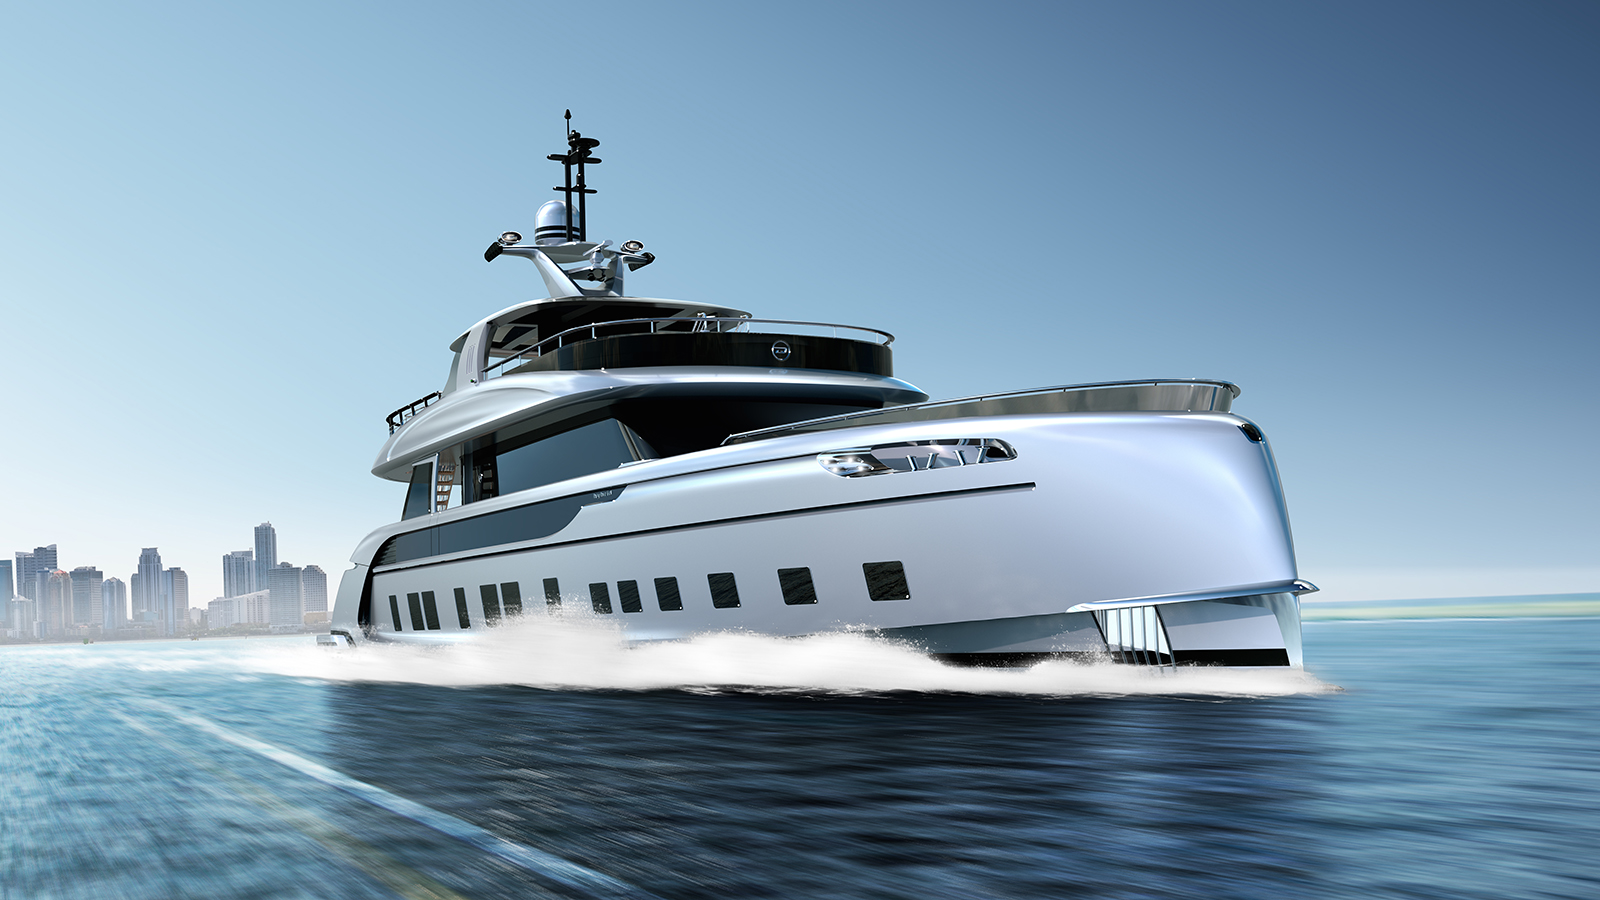 This isn't just any superyacht… this is a Porsche superyacht